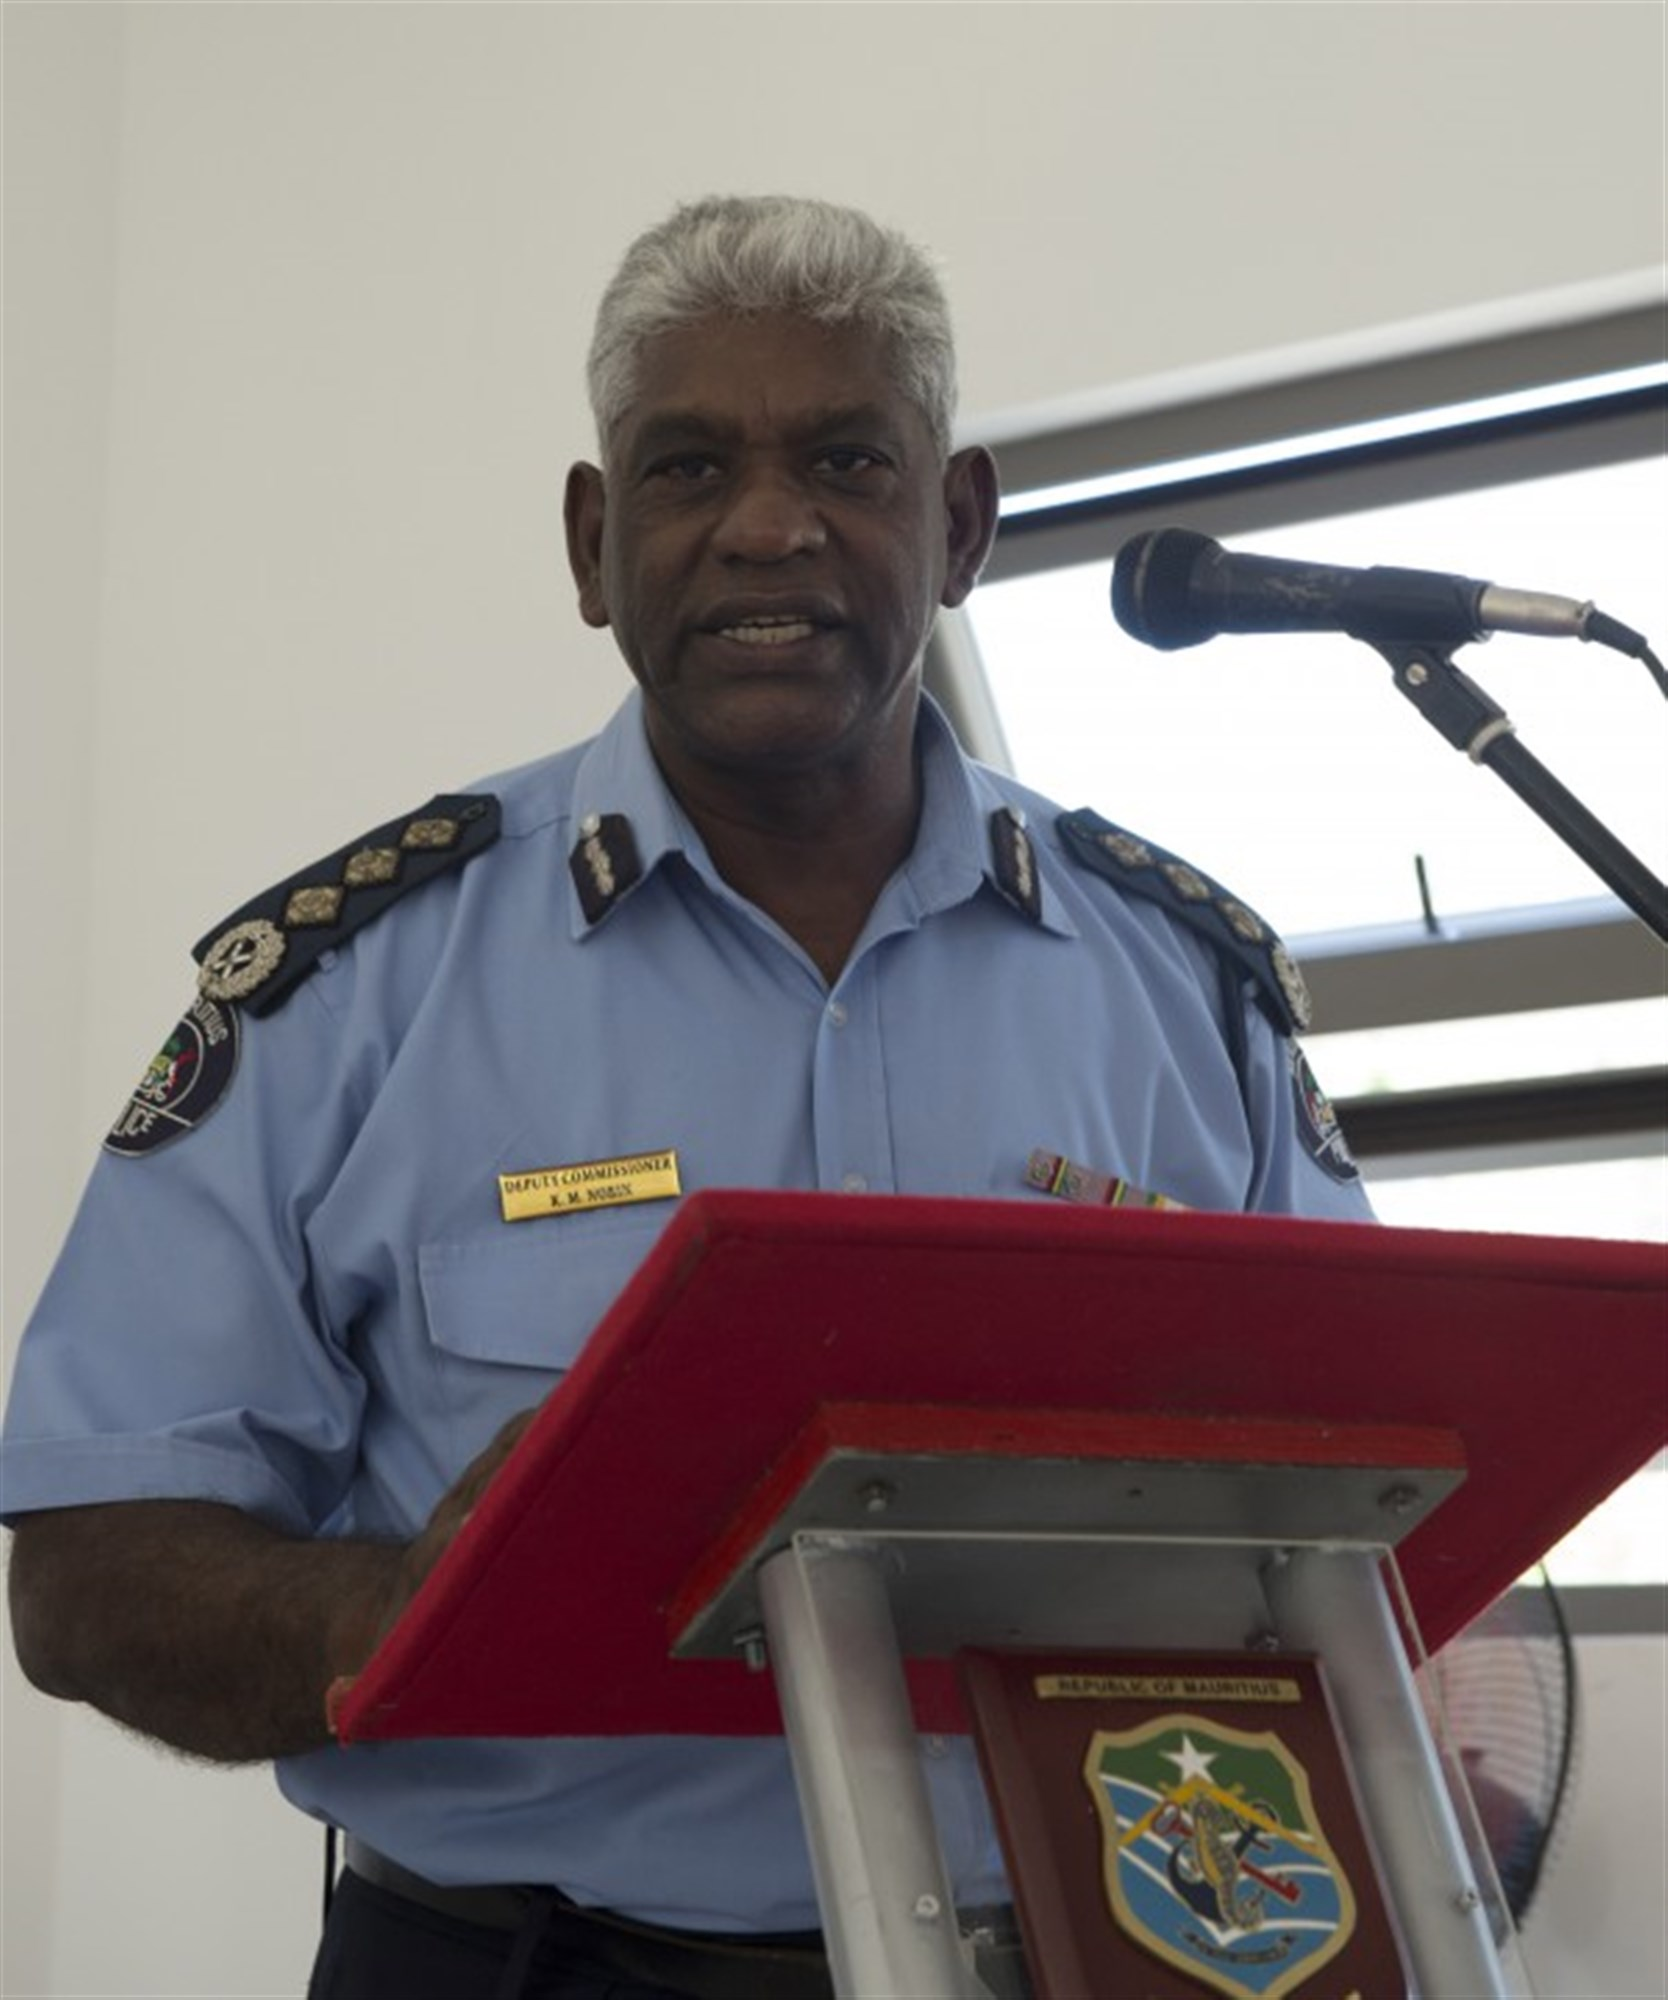 LE CHALAND, Mauritius (Jan. 28, 2015) Mauritian Deputy Commissioner of Police Mario Nobin addresses attendees during the opening ceremony of Exercise Cutlass Express 2015, Jan. 28. Exercise Cutlass Express 2015, sponsored by U.S. Africa Command, is designed to improve regional cooperation, maritime domain awareness, and information sharing practices to increase capabilities of East African and Indian Ocean nations to counter sea-based illicit activity. (U.S. Navy photo by Mass Communication Specialist 1st Class David R. Krigbaum/Released)